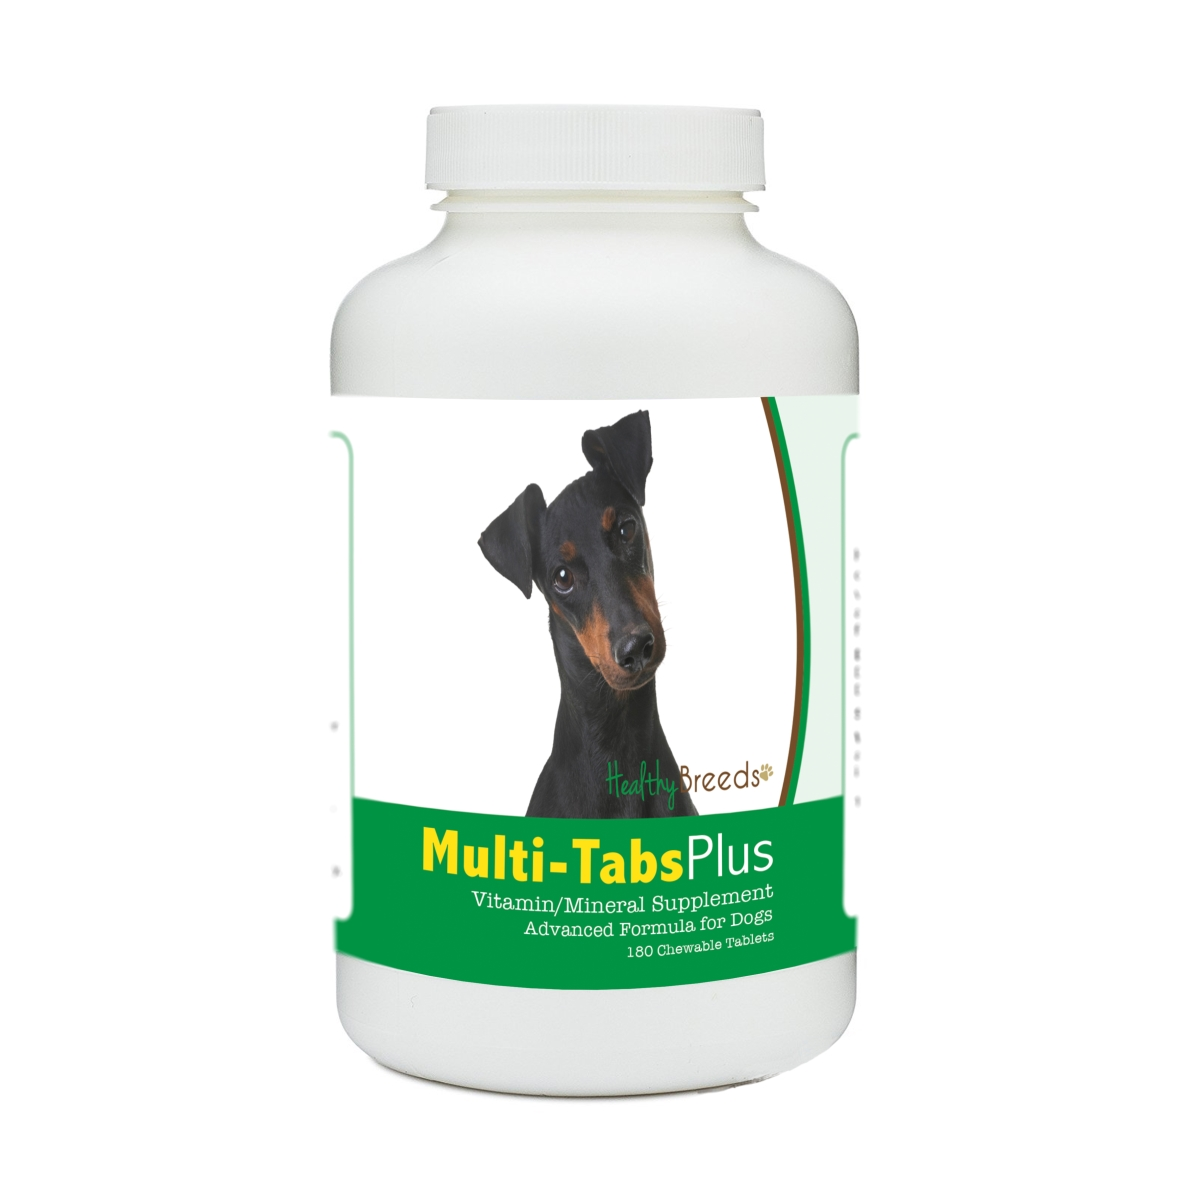 Healthy Breeds 840235173502 Manchester Terrier Multi-Tabs Plus Chewable Tablets - 180 Count